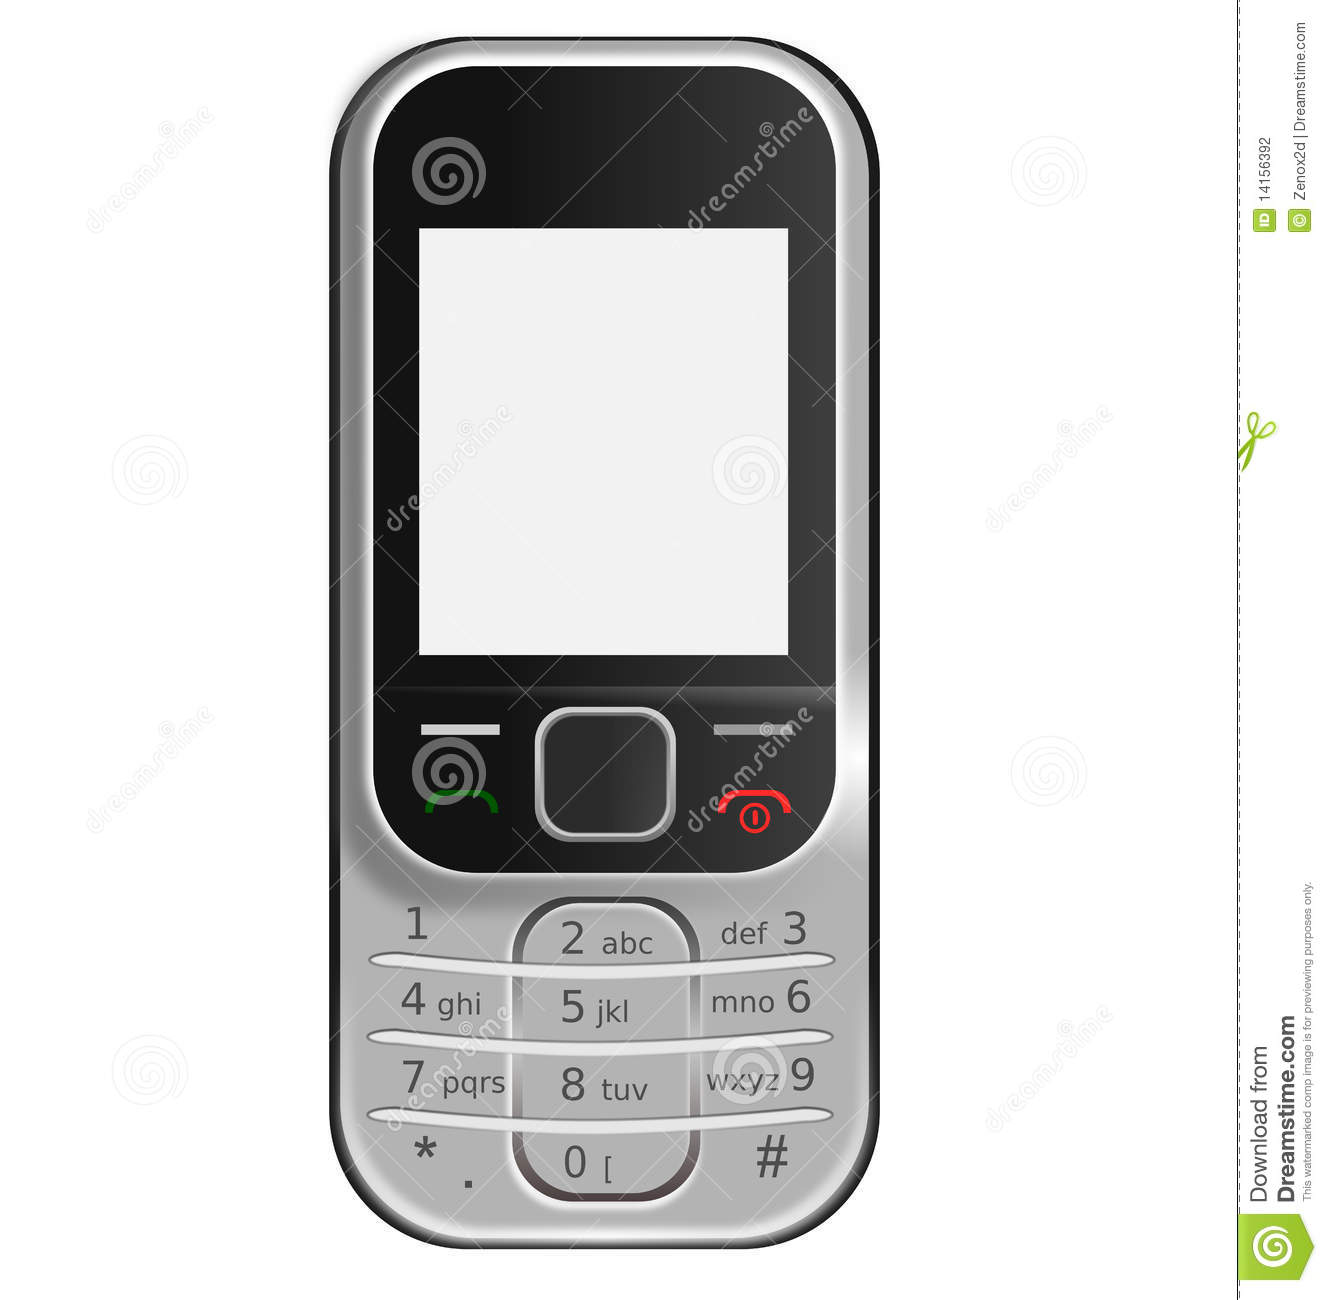 The Sociological Perspectives Of Cellular Phones Essay Sample